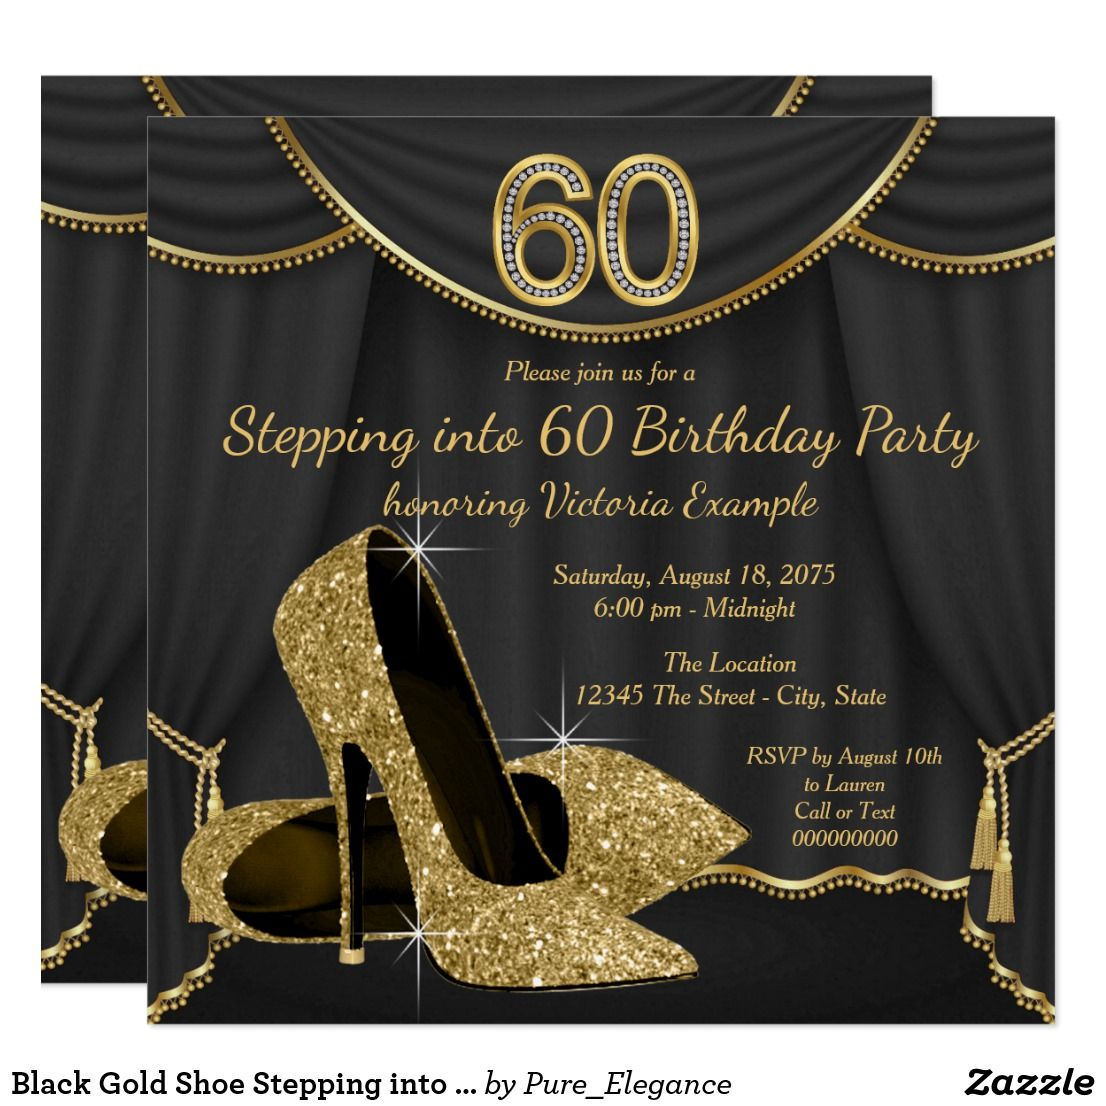 Black Gold Shoe Stepping into 60 Birthday Party Card | Birthdays